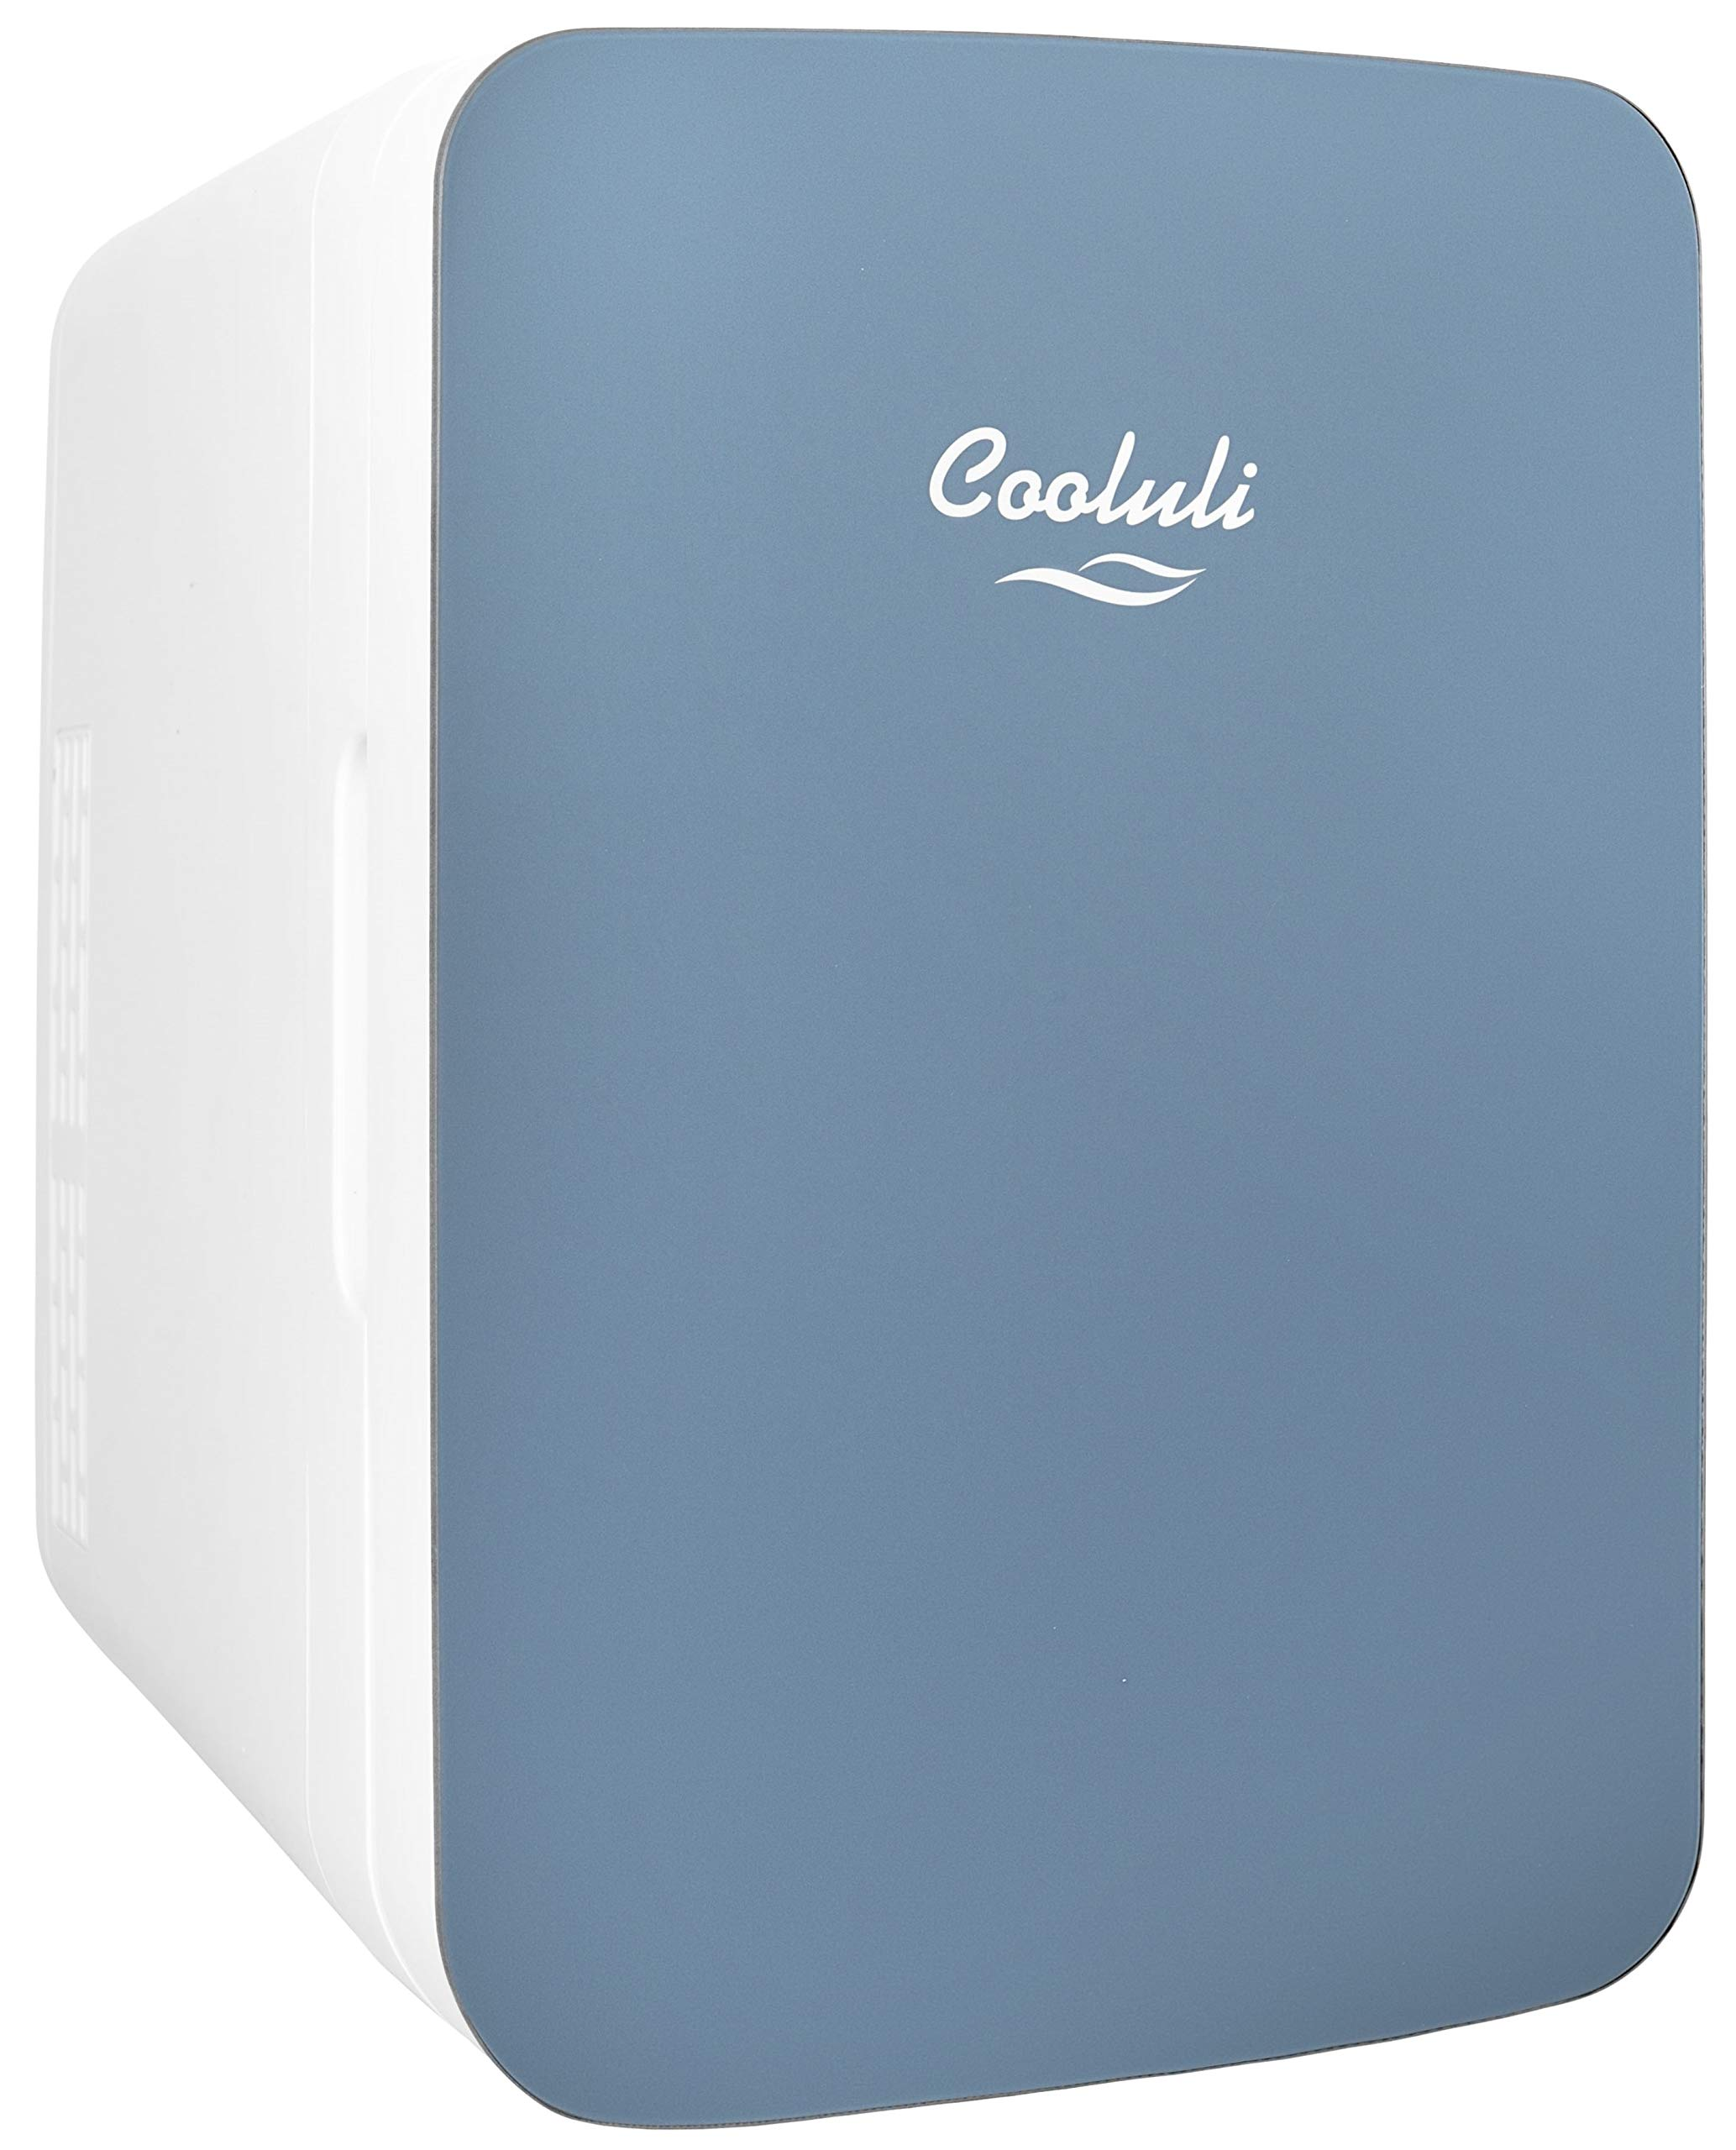 Cooluli Infinity 10-liter Compact Cooler/Warmer Mini Fridge for Cars, Road Trips, Homes, Offices, and Dorms (Blue)